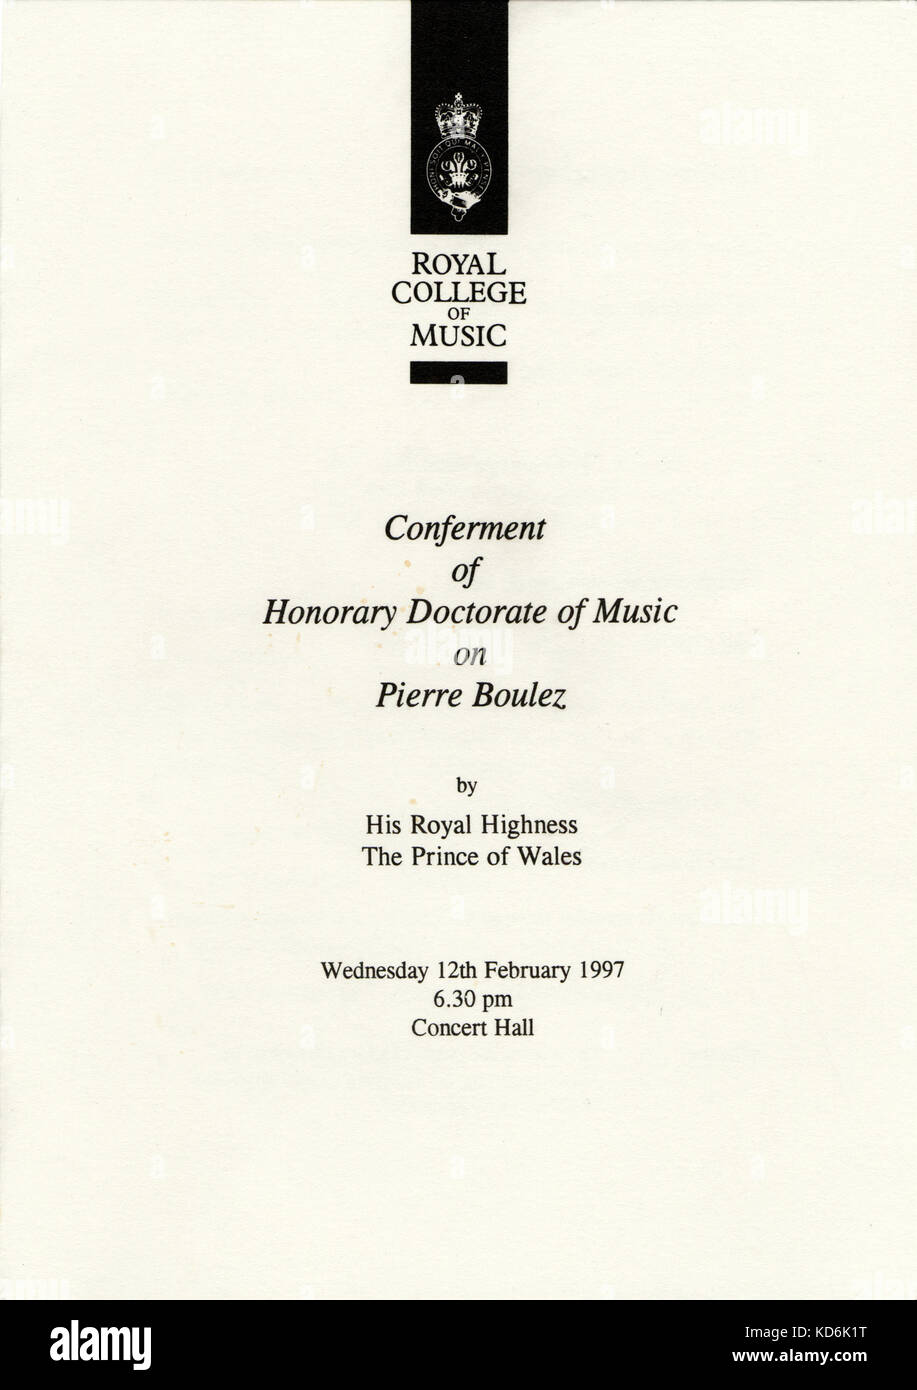 Order of ceremony for the Conferment of Honorary Doctorate of Music on Pierre Boulez, by His Royal Highness The - Stock Image